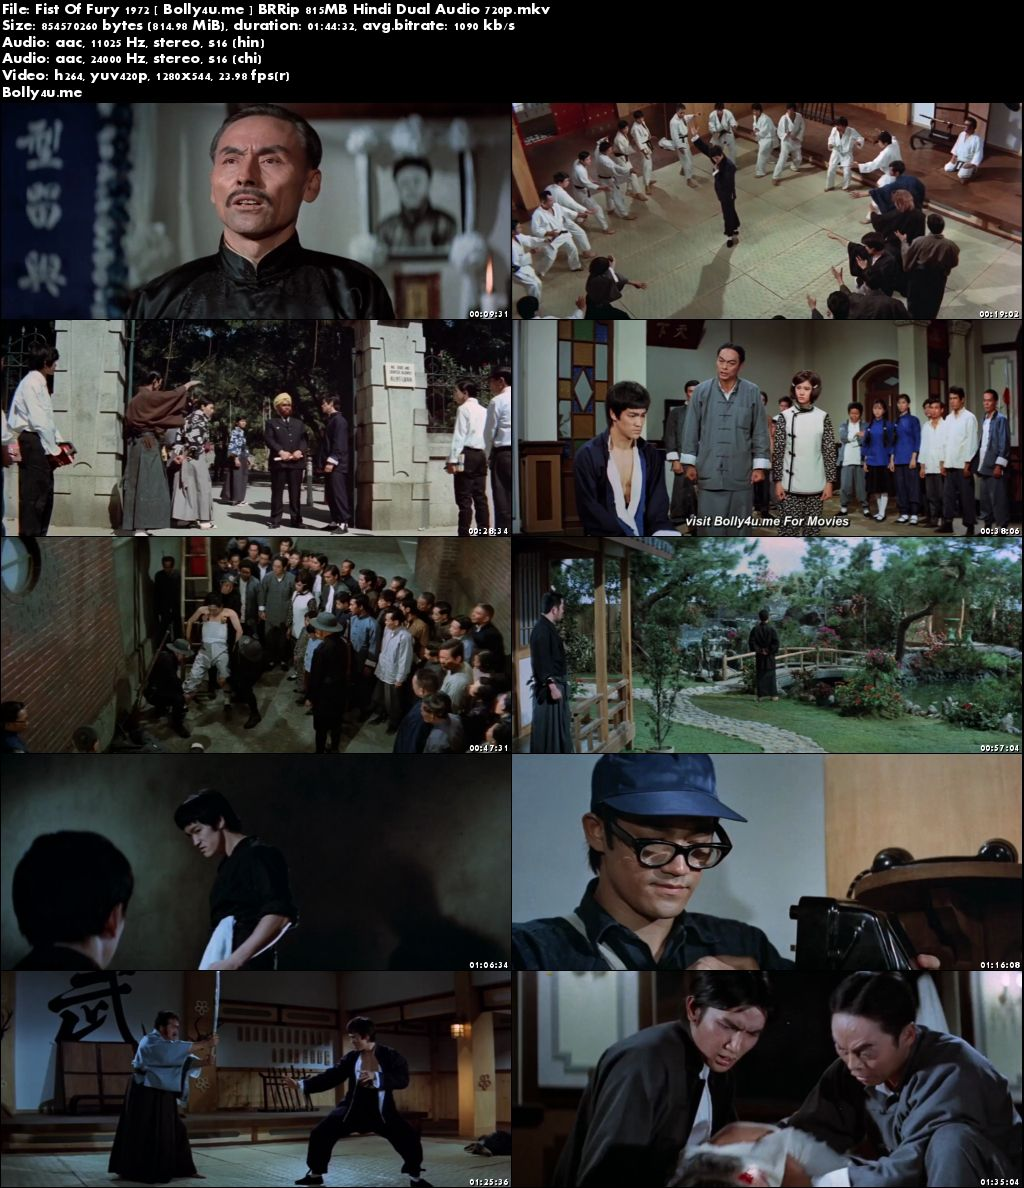 Fist Of Fury 1972 BRRip 350MB Hindi Dual Audio 480p Download